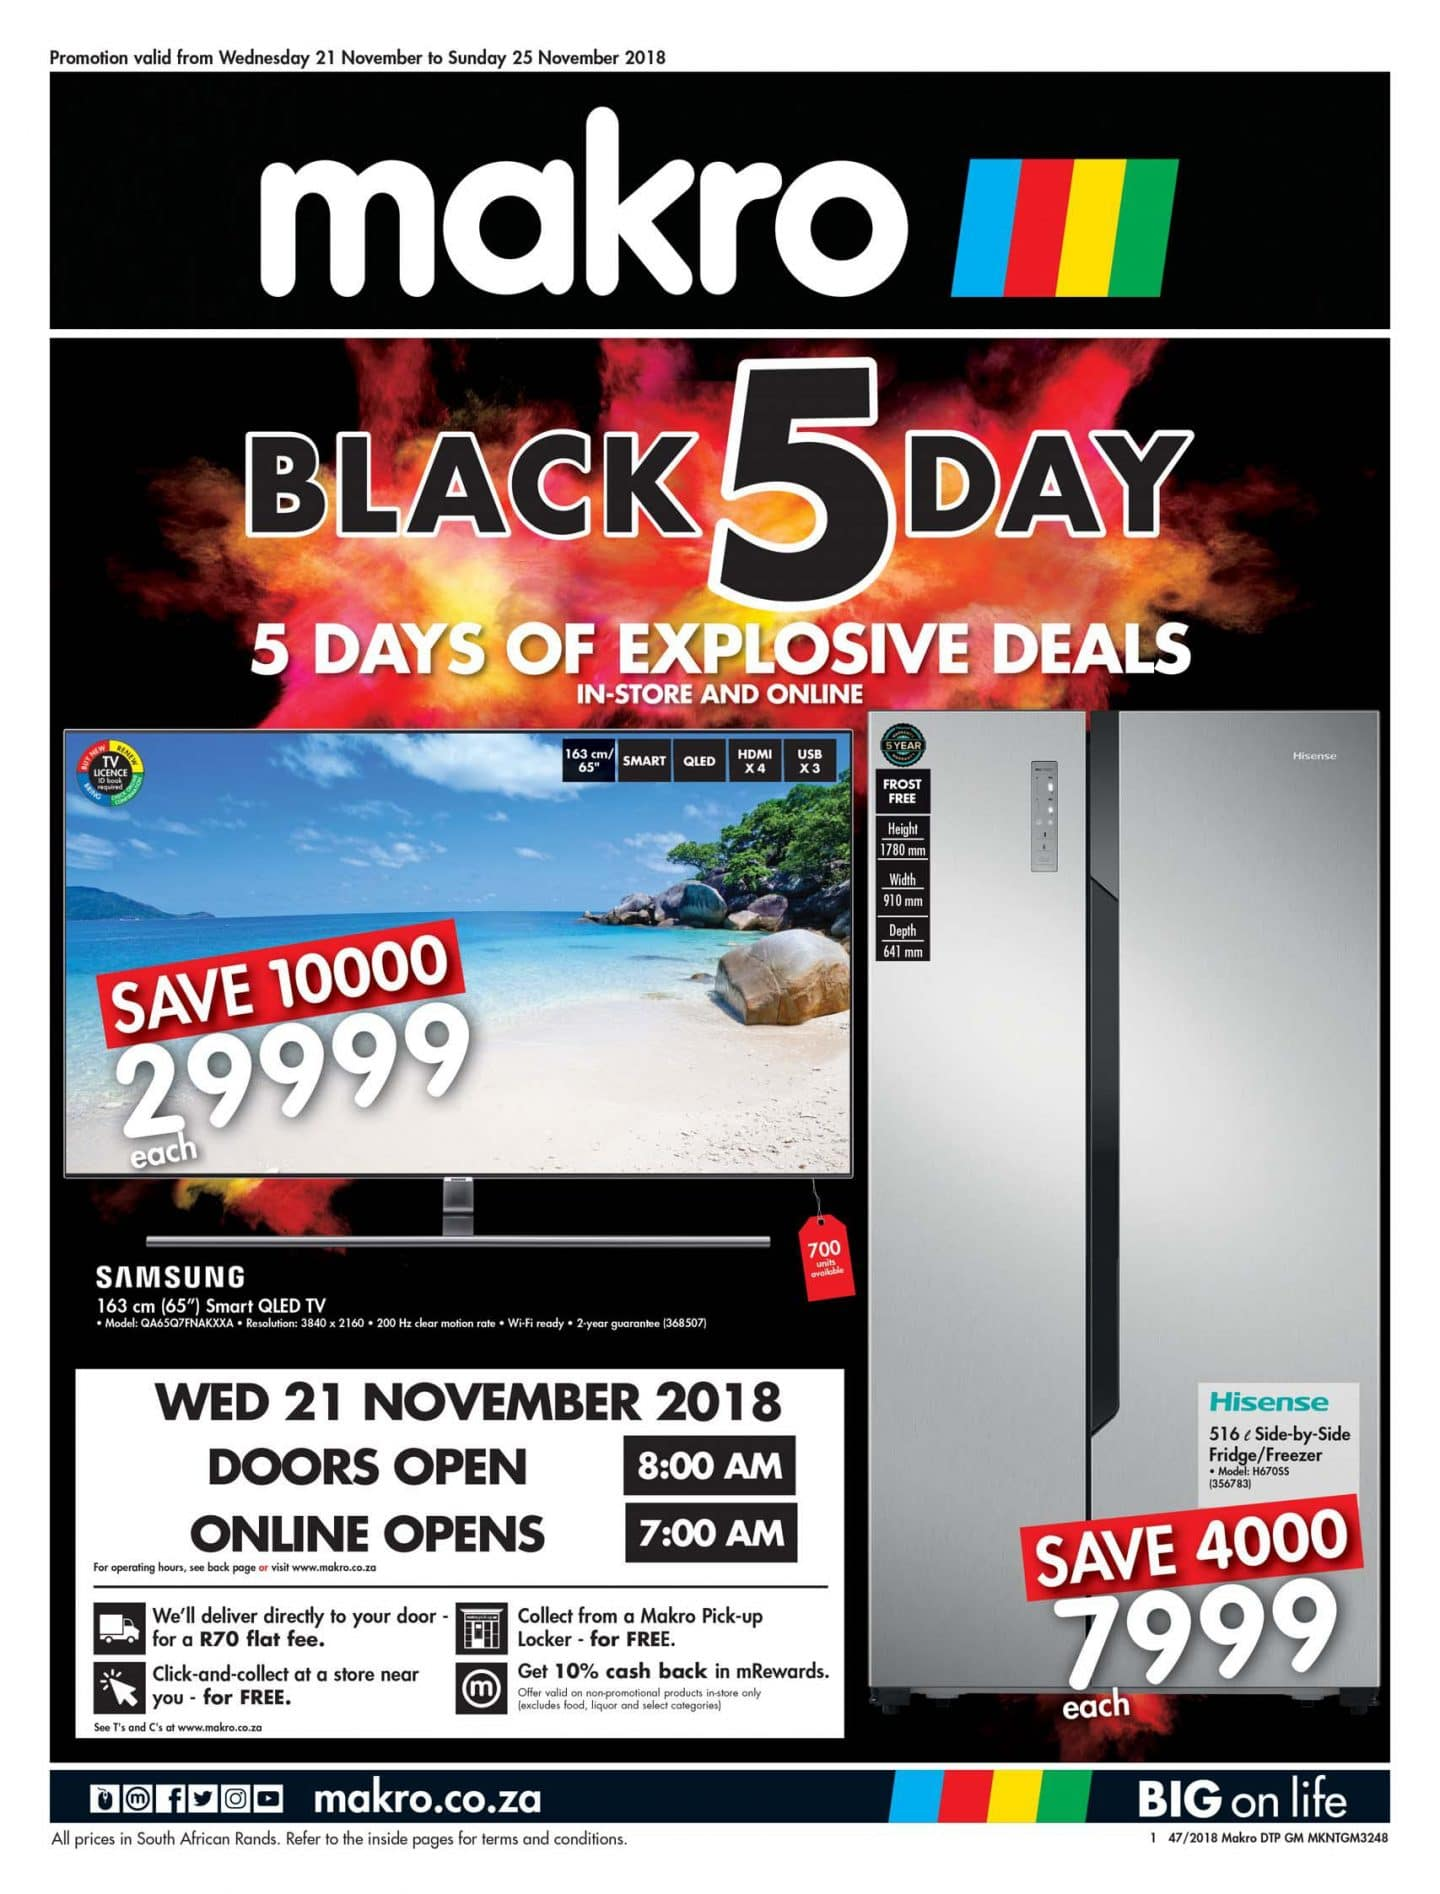 Black Friday Specials Makro Black Friday Catalogue Specials 2018